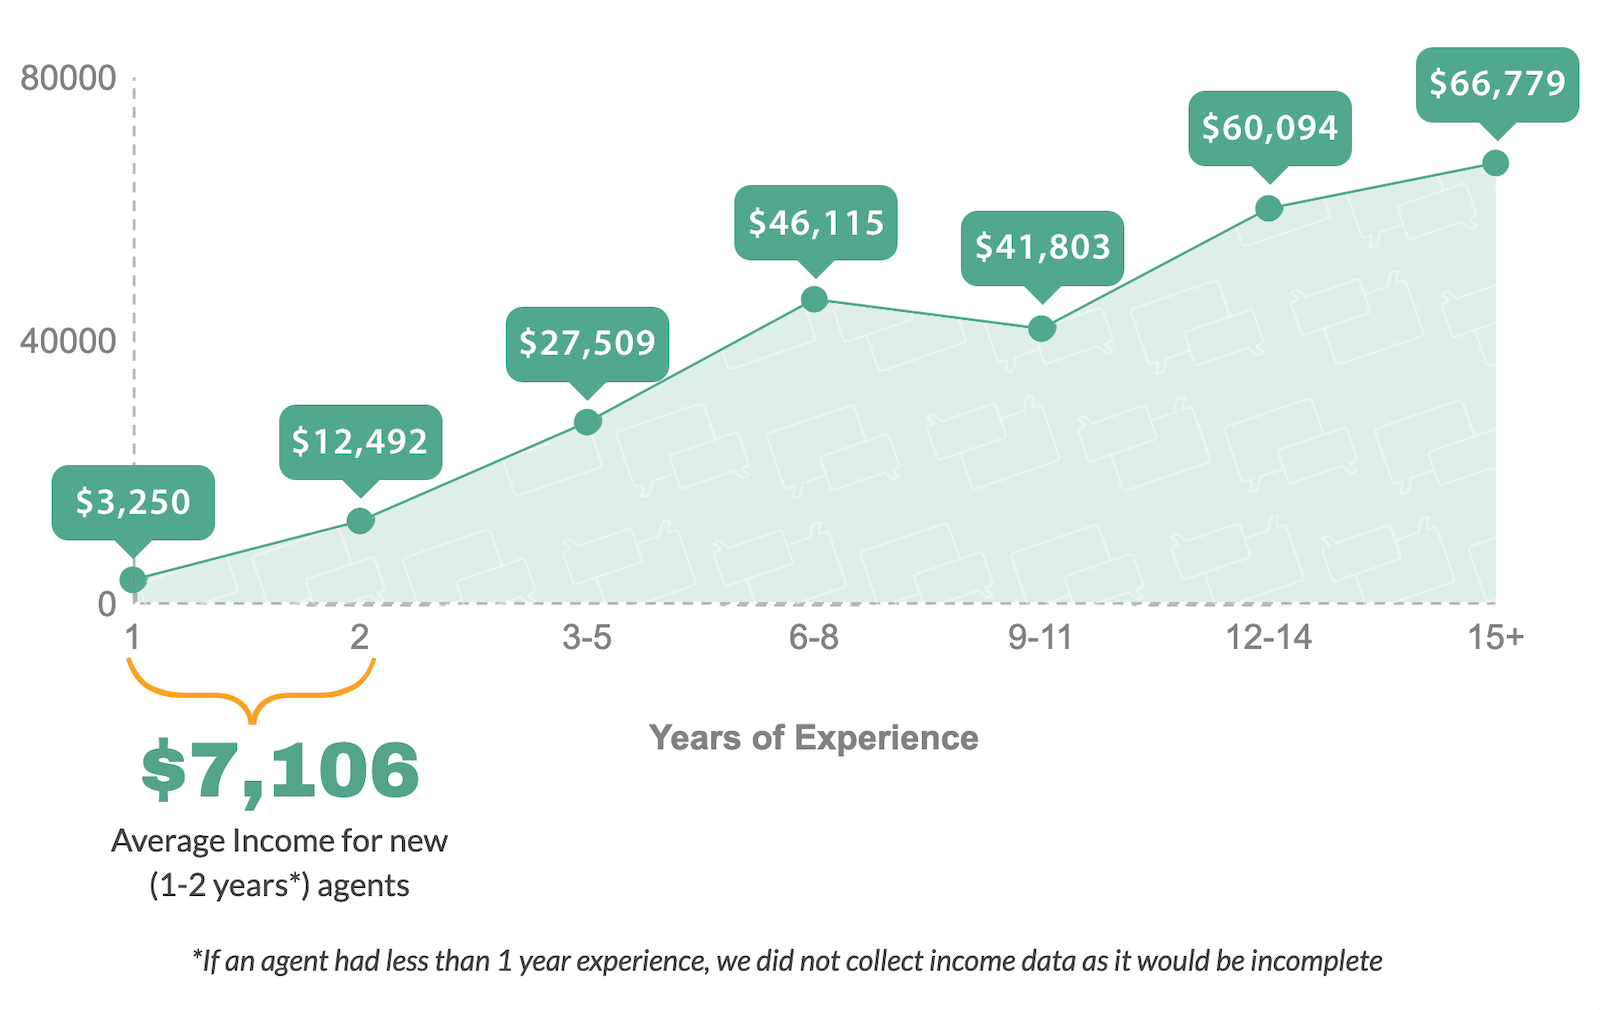 2019 Travel Agent Income by Years of Experience